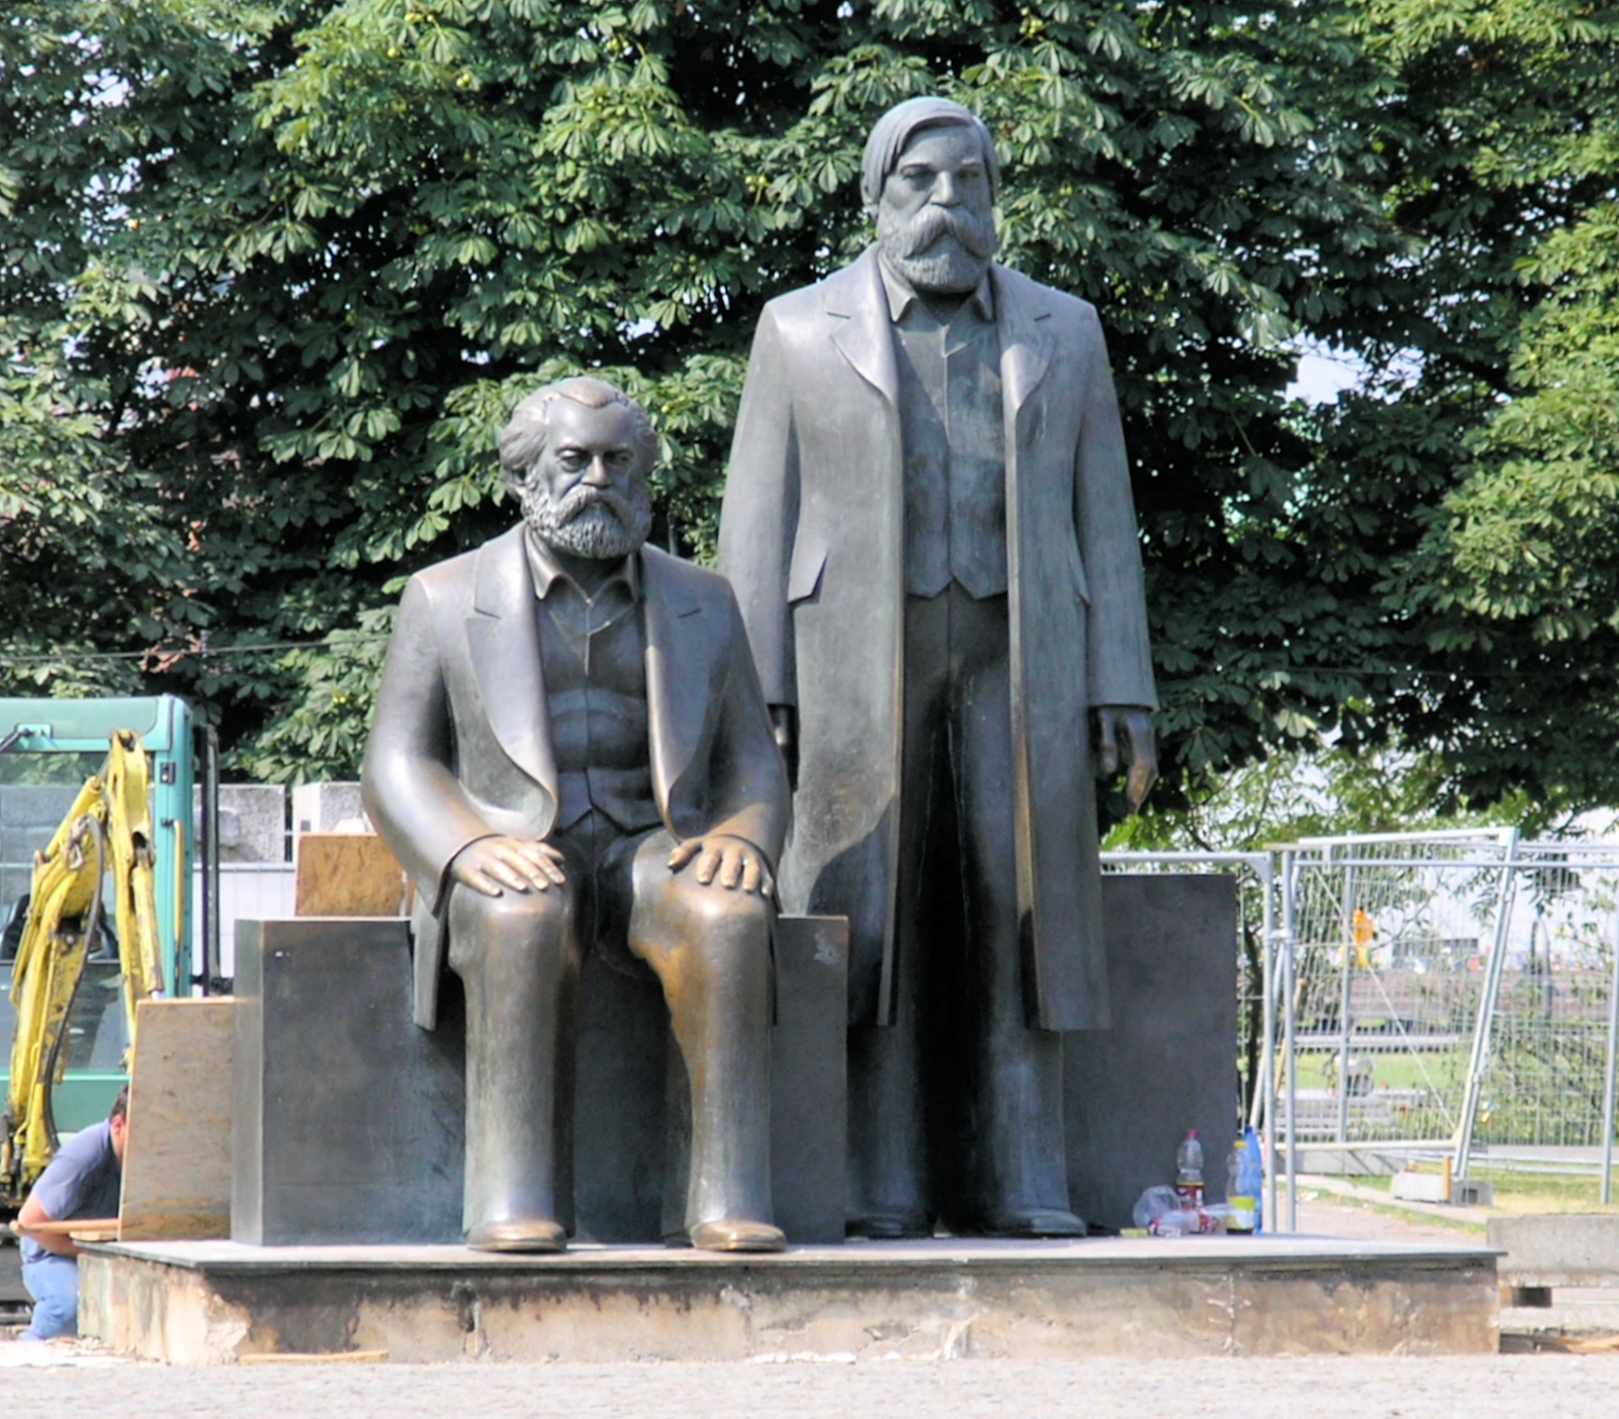 https://upload.wikimedia.org/wikipedia/commons/f/f9/Denkmal_Karl-Liebknecht-Str_(Mitte)_Marx_Engels.jpg